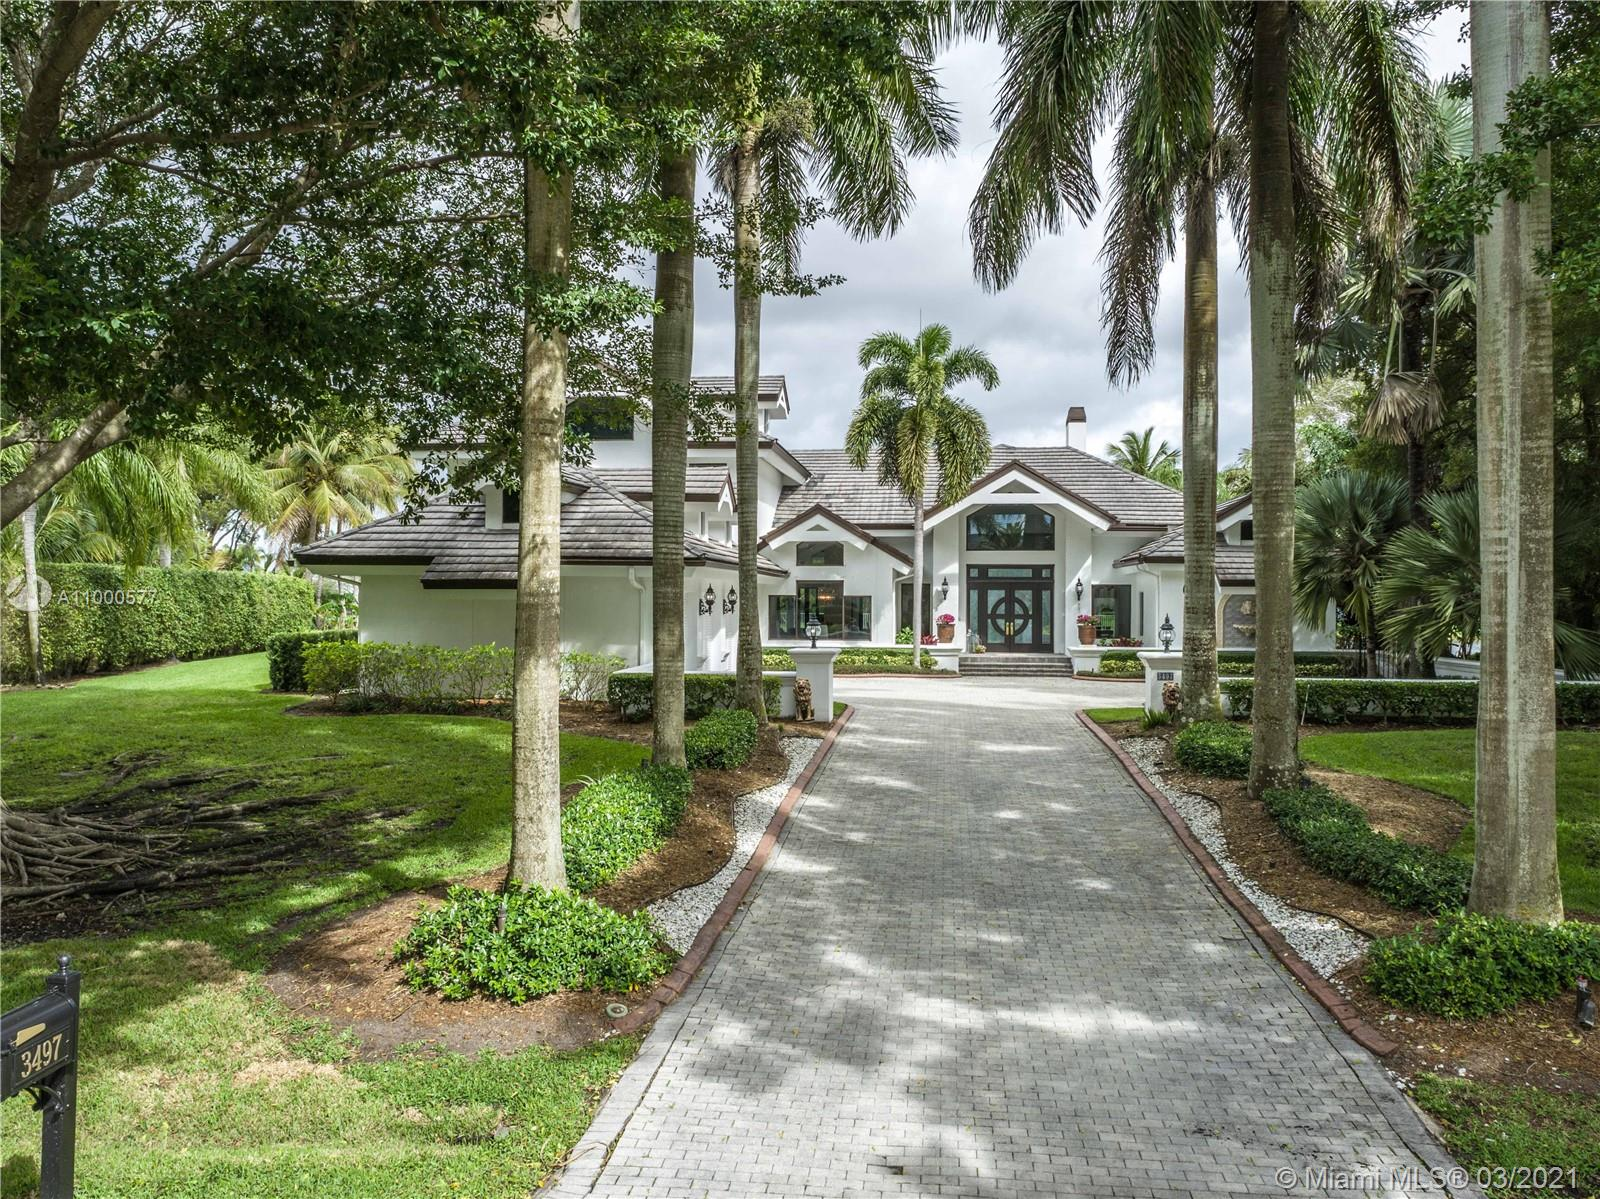 Florida living at its finest, welcome to this elegant 1.1 acre waterfront home in Windmill Ranch Estates. Setback on a long, private driveway this 6 bed/ 6.5 bath home is an entertainer's delight. Sleek, modern & neutral throughout with the perfect distribution for a large family. Dramatic light filled foyer leads to the formal living room with contemporary fireplace, soaring ceilings and panoramic water views. State of the art chef's kitchen with top of the like cabinetry and appliances. Spacious backyard with modern style pool, spectacular water views and plenty of room for the kids to play.